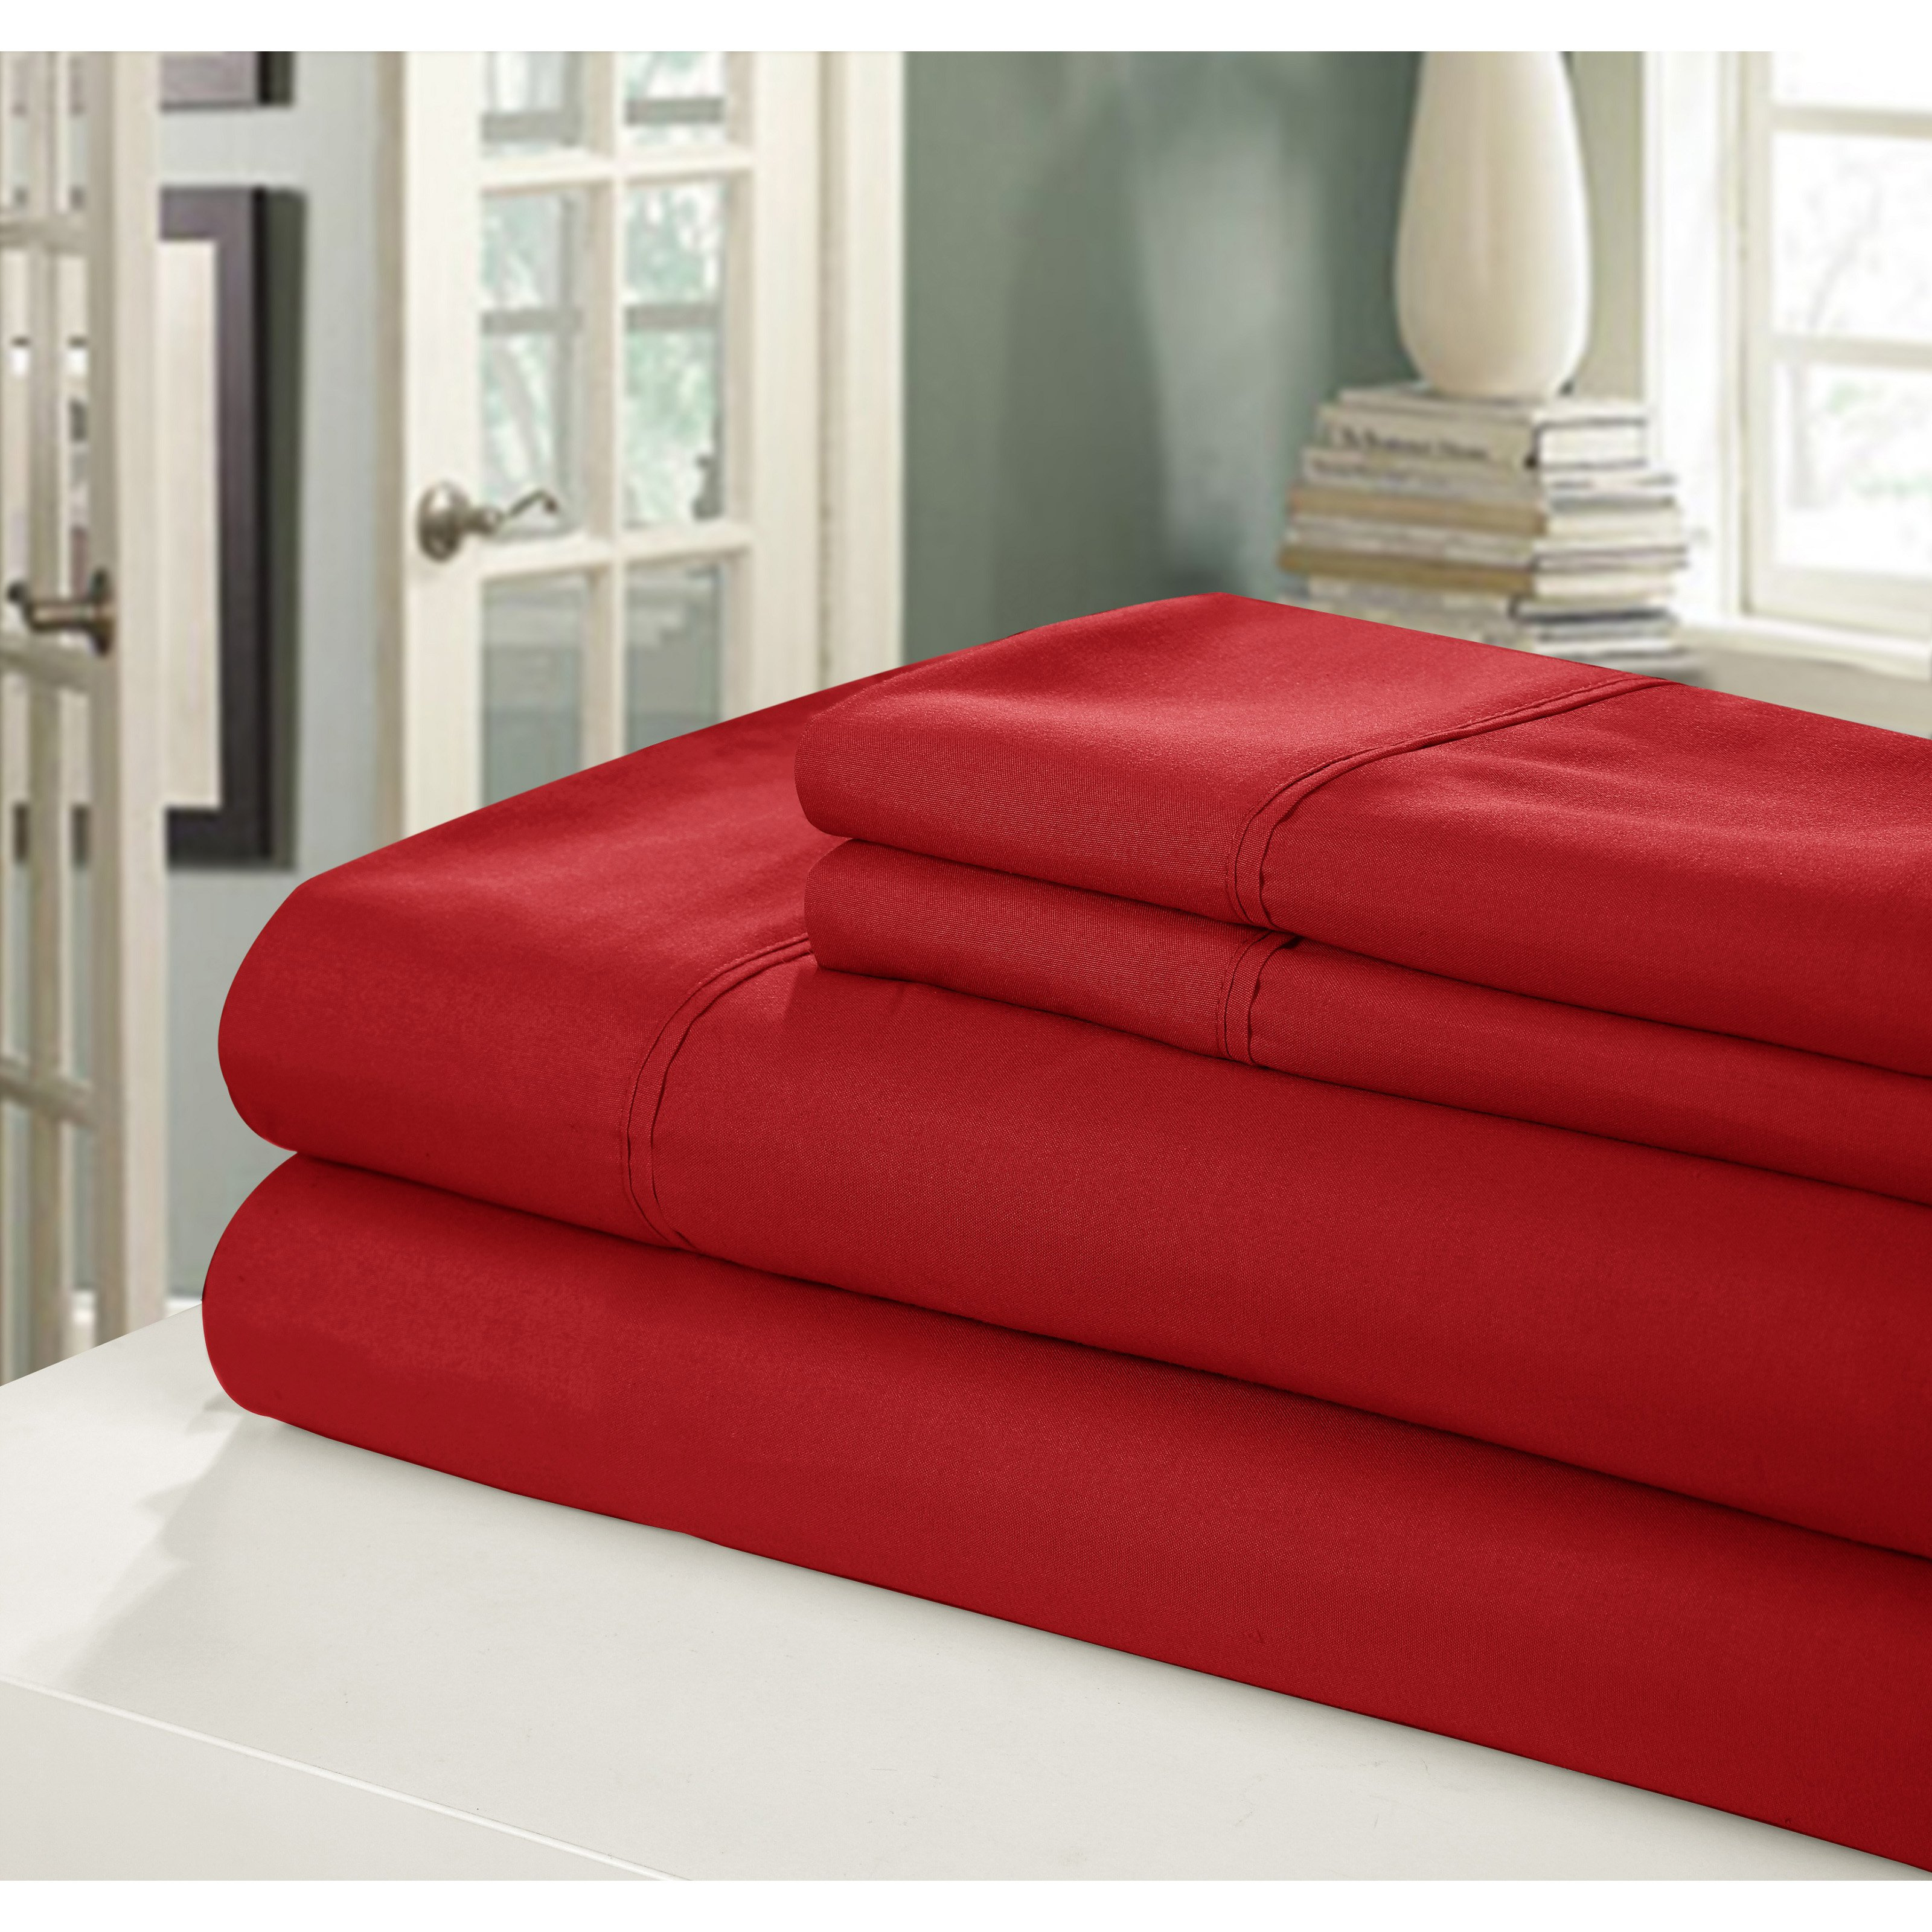 Chic Home Peach Skin Microfiber Sheet Set - Queen - Red